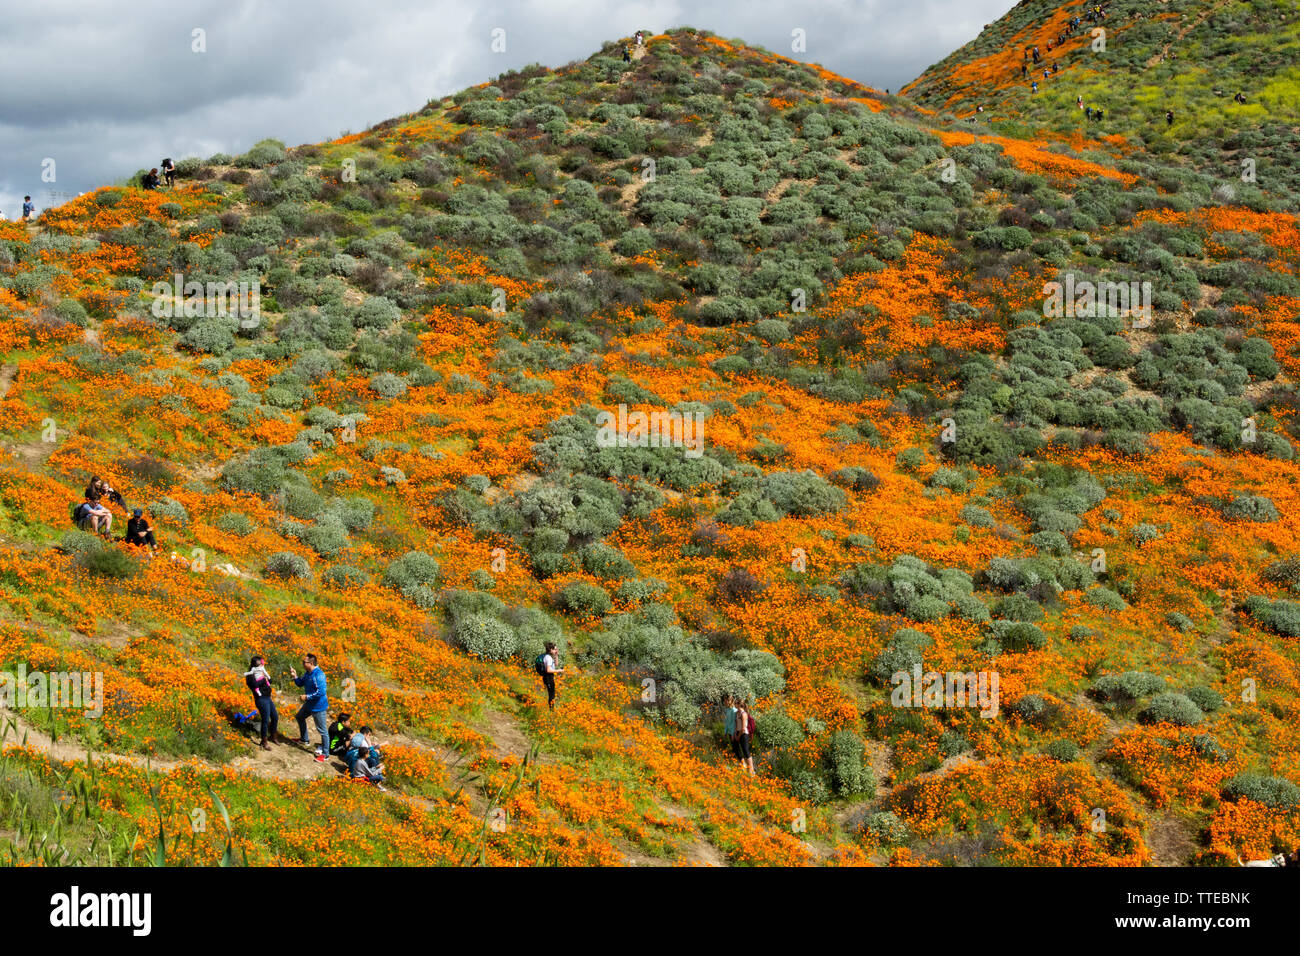 Lake Elsinore, CA / USA - March 9, 2019: Tourists from all over the world hike in the hills of Walker Canyon in order to enjoy the California poppies. - Stock Image